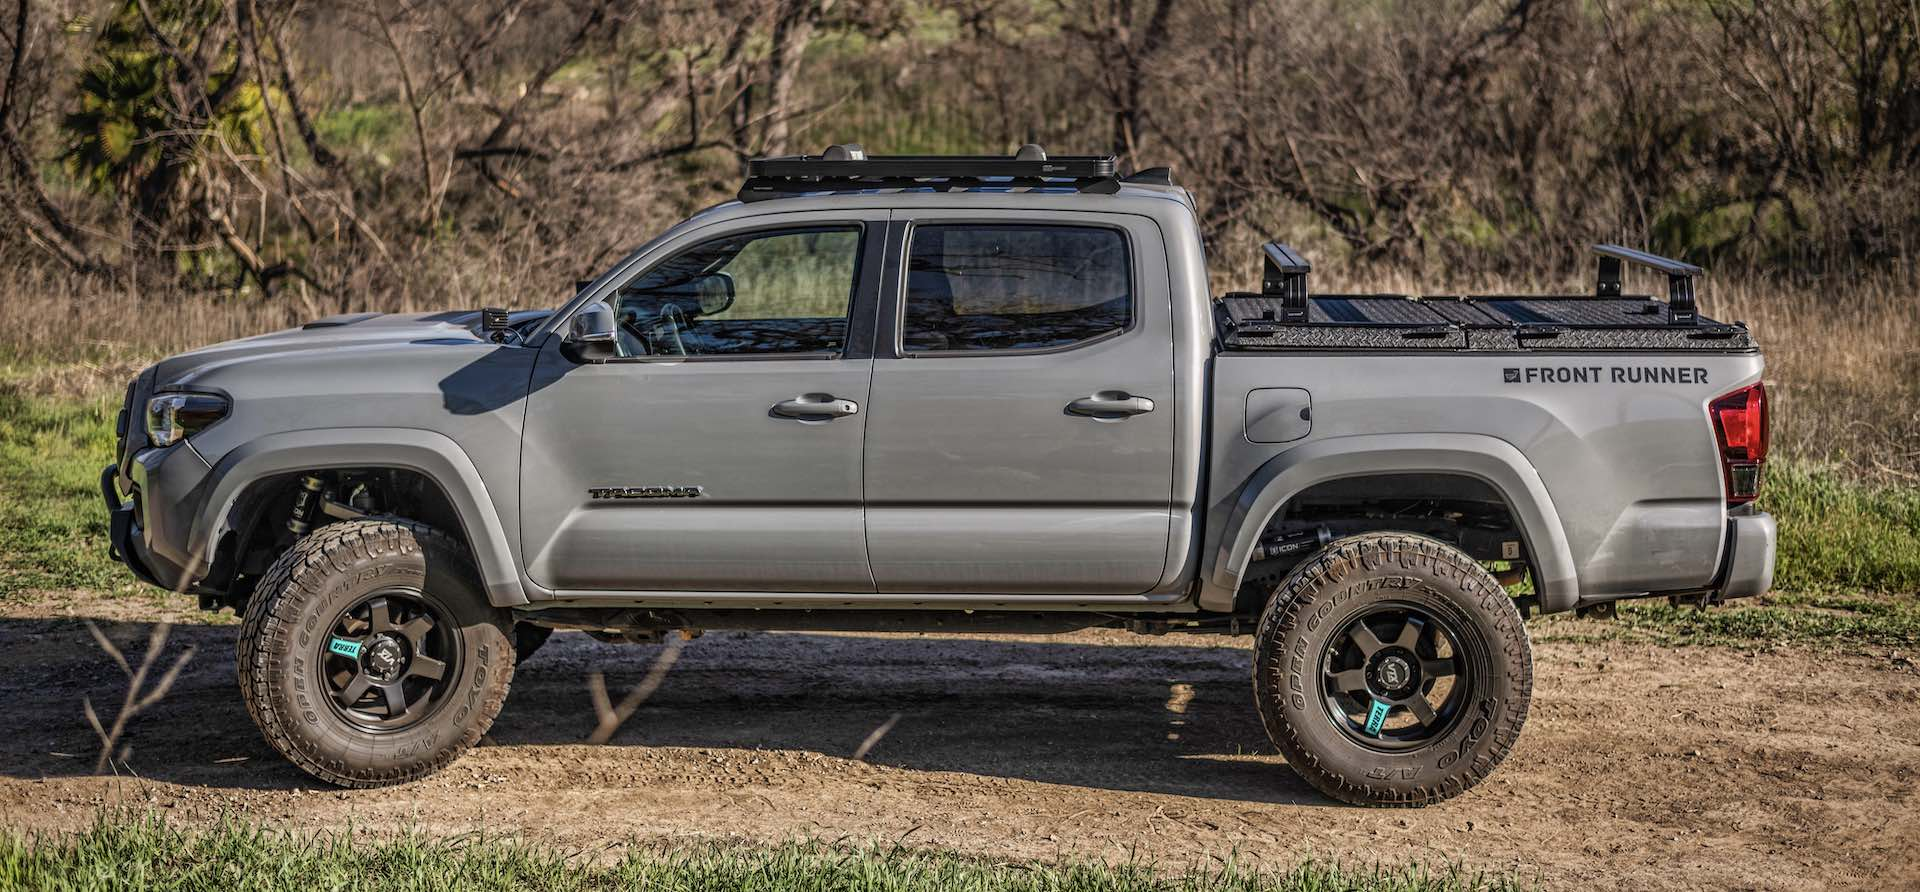 Toyota Tacoma with DiamondBack HD and Front Runner Rack